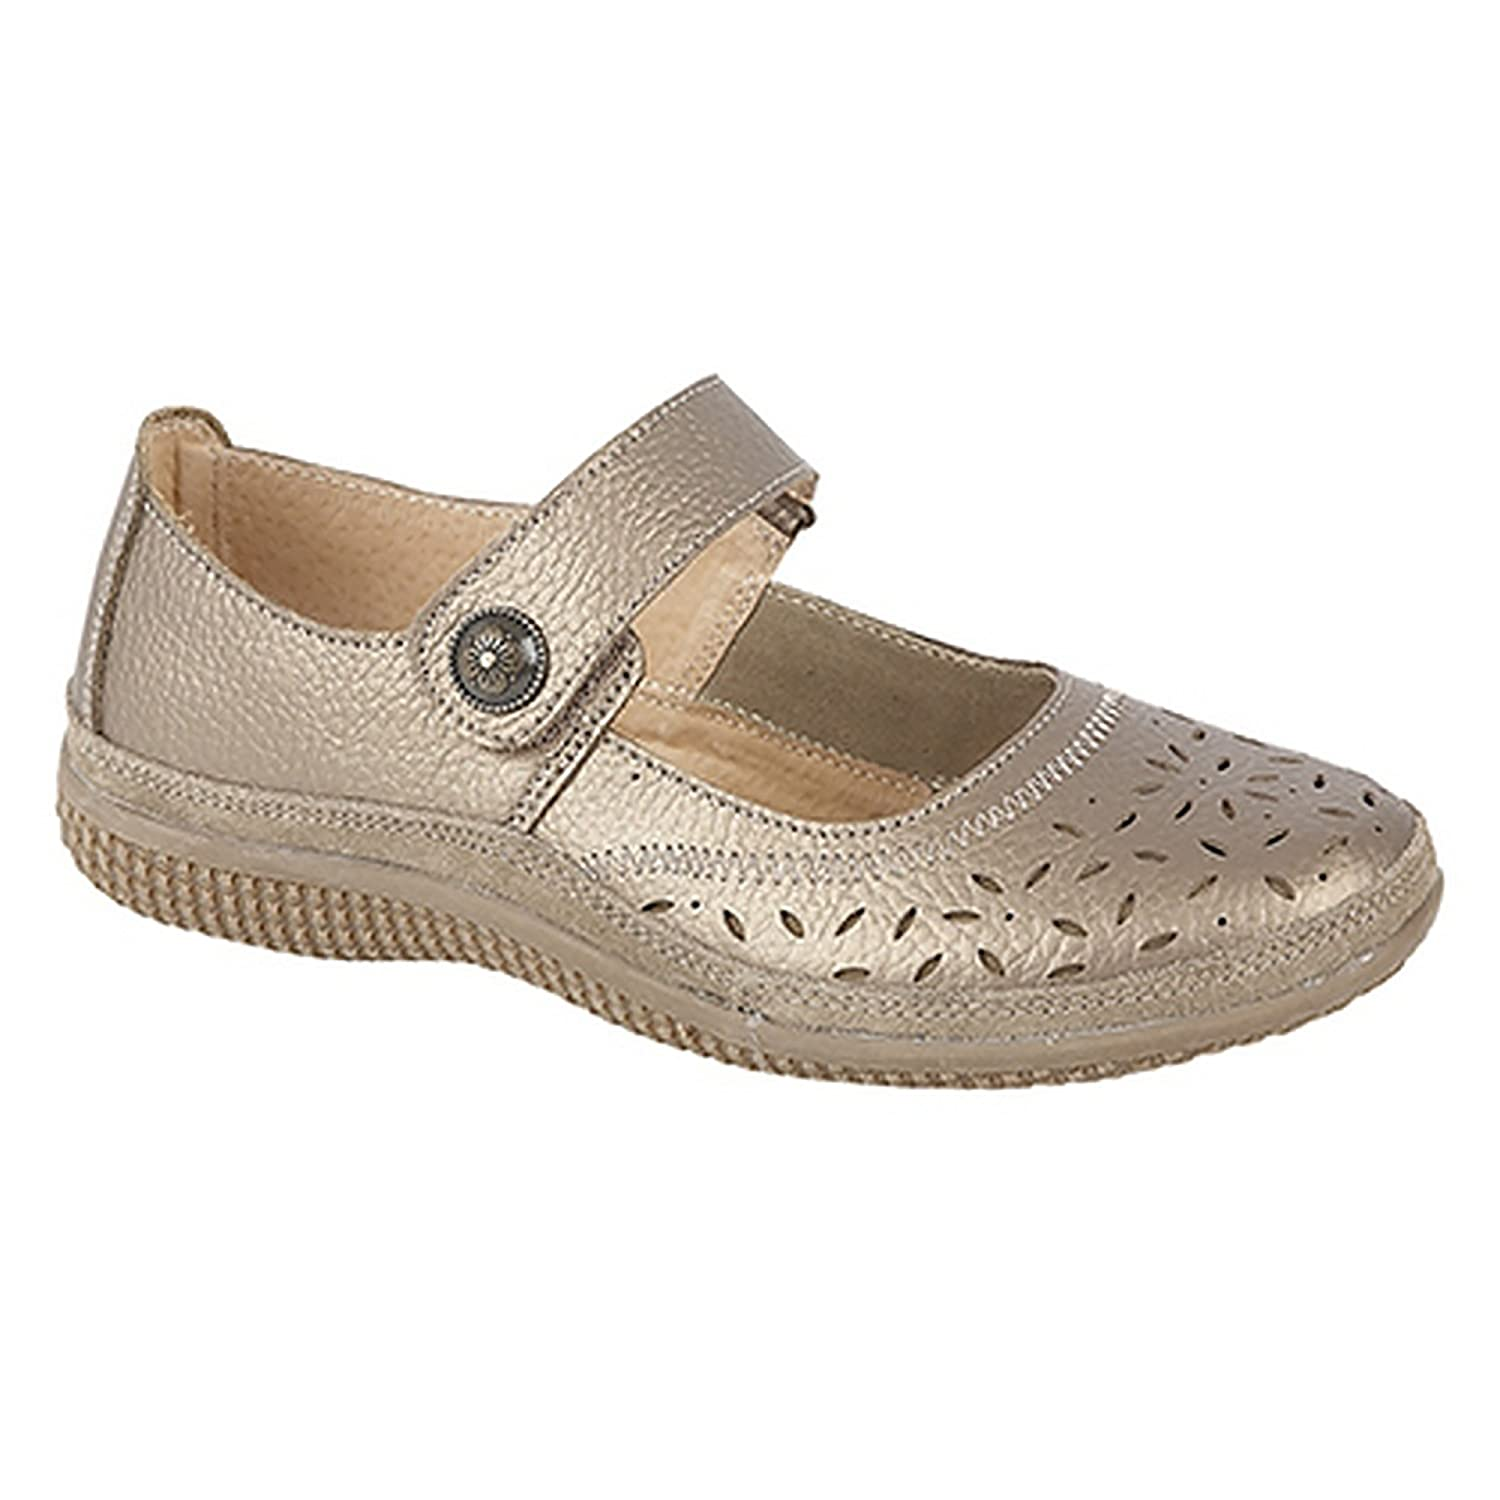 Boulevard Womens//Ladies Wide Fitting Touch Fastening Perforated Bar Shoes